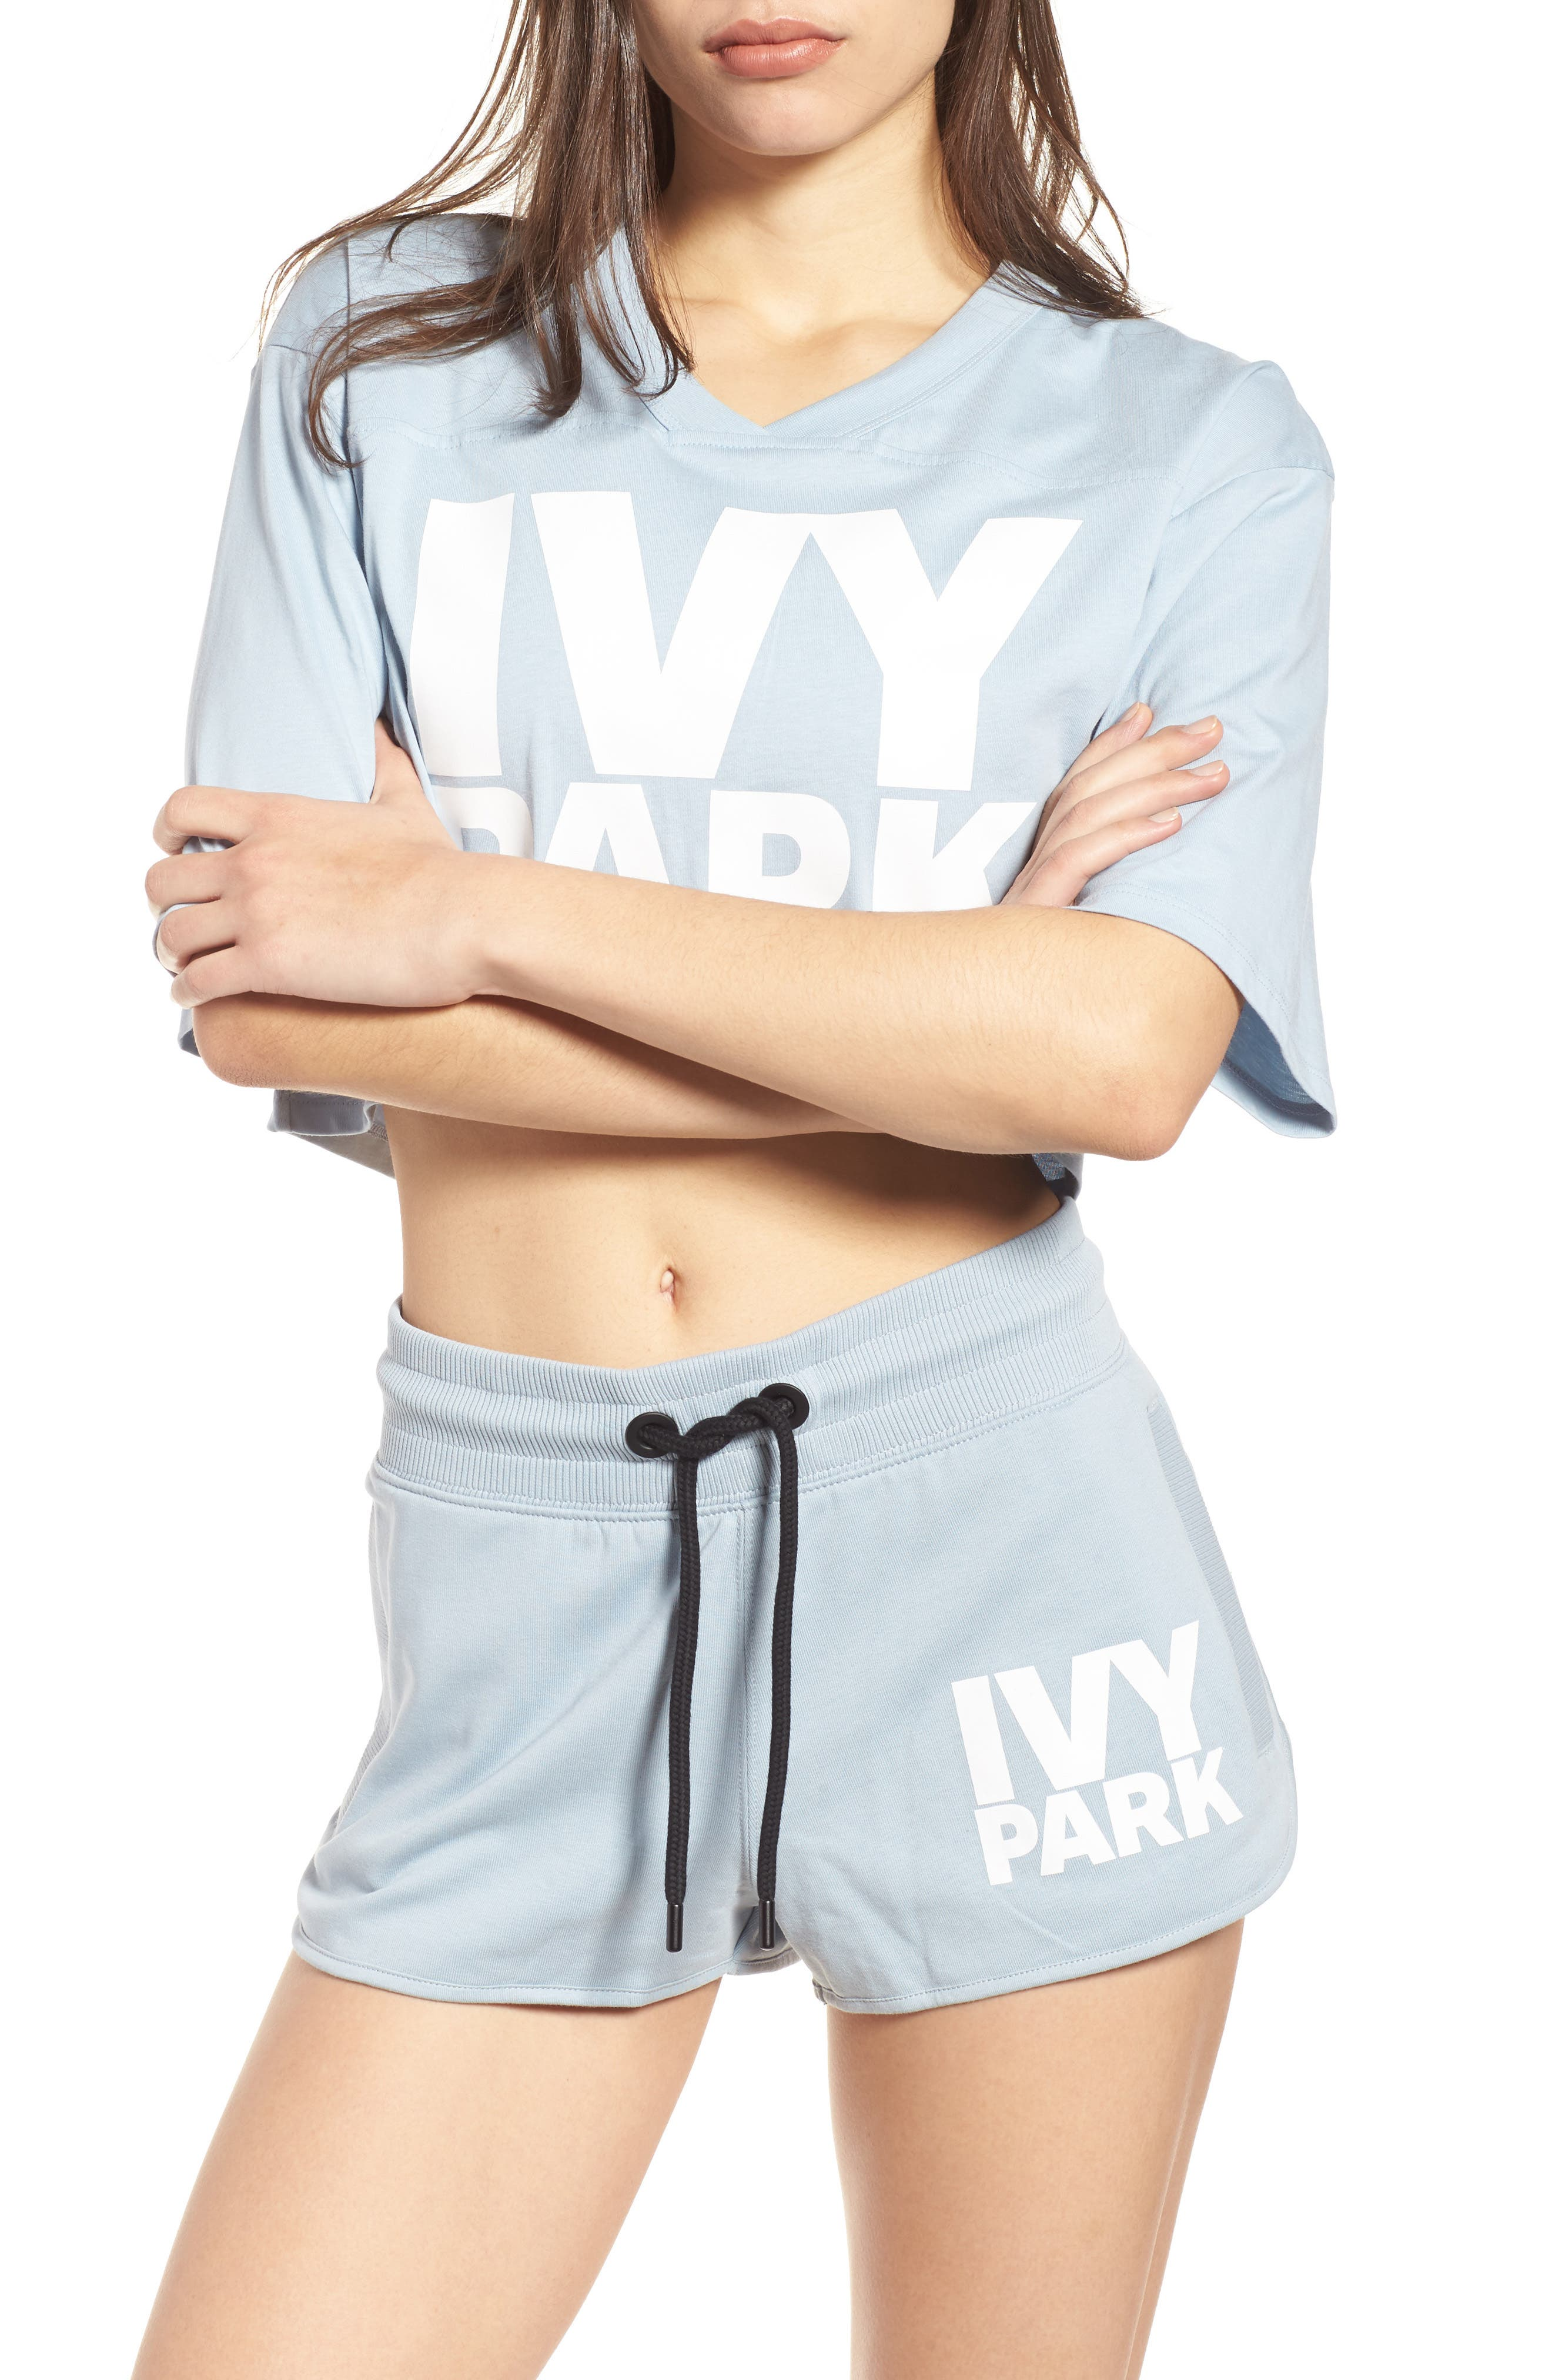 Alternate Image 1 Selected - IVY PARK® Logo Crop Tee